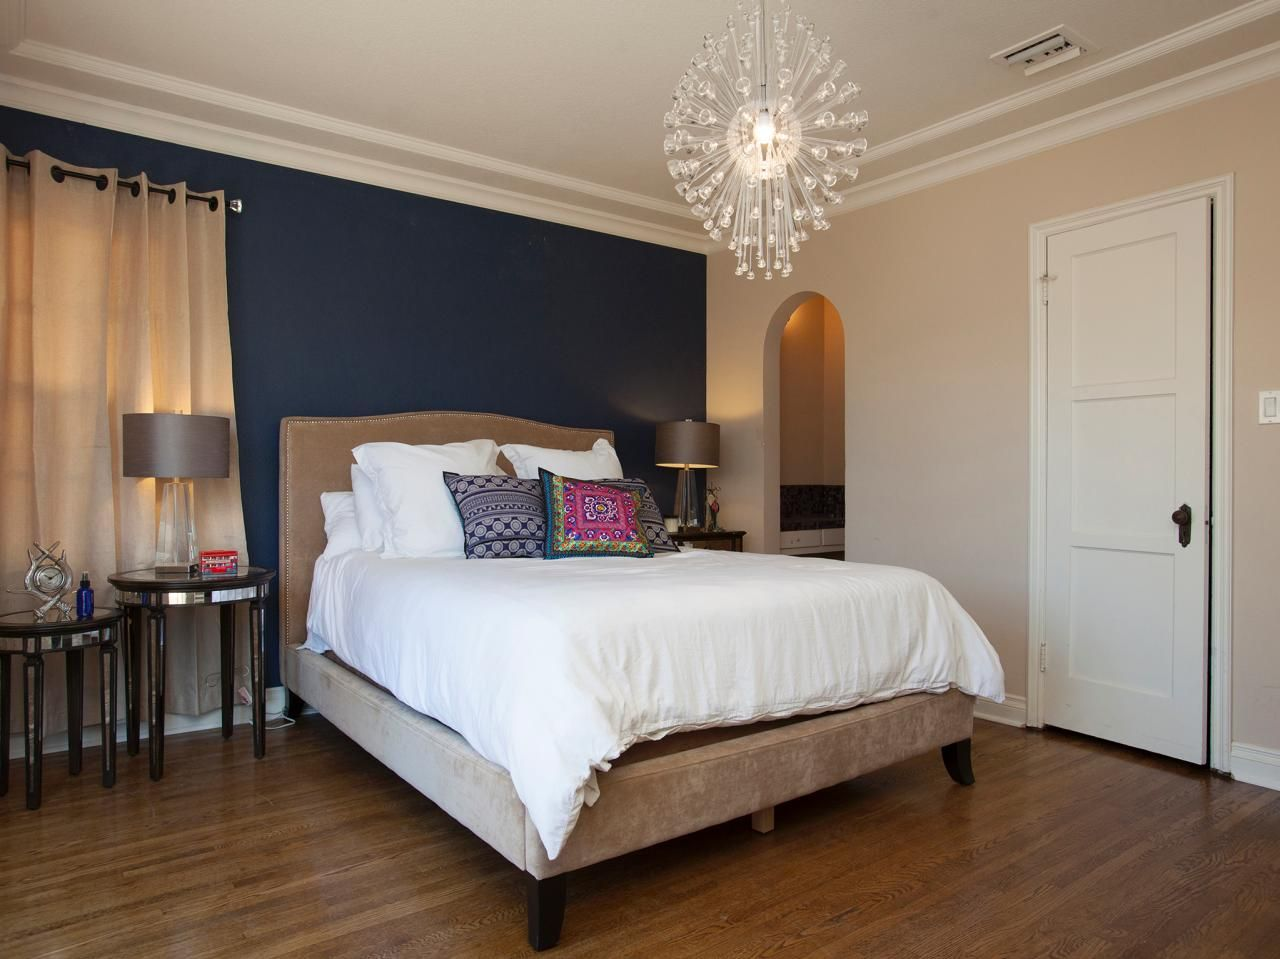 25 Amazing Room Makeovers From Hgtv S House Hunters Renovation